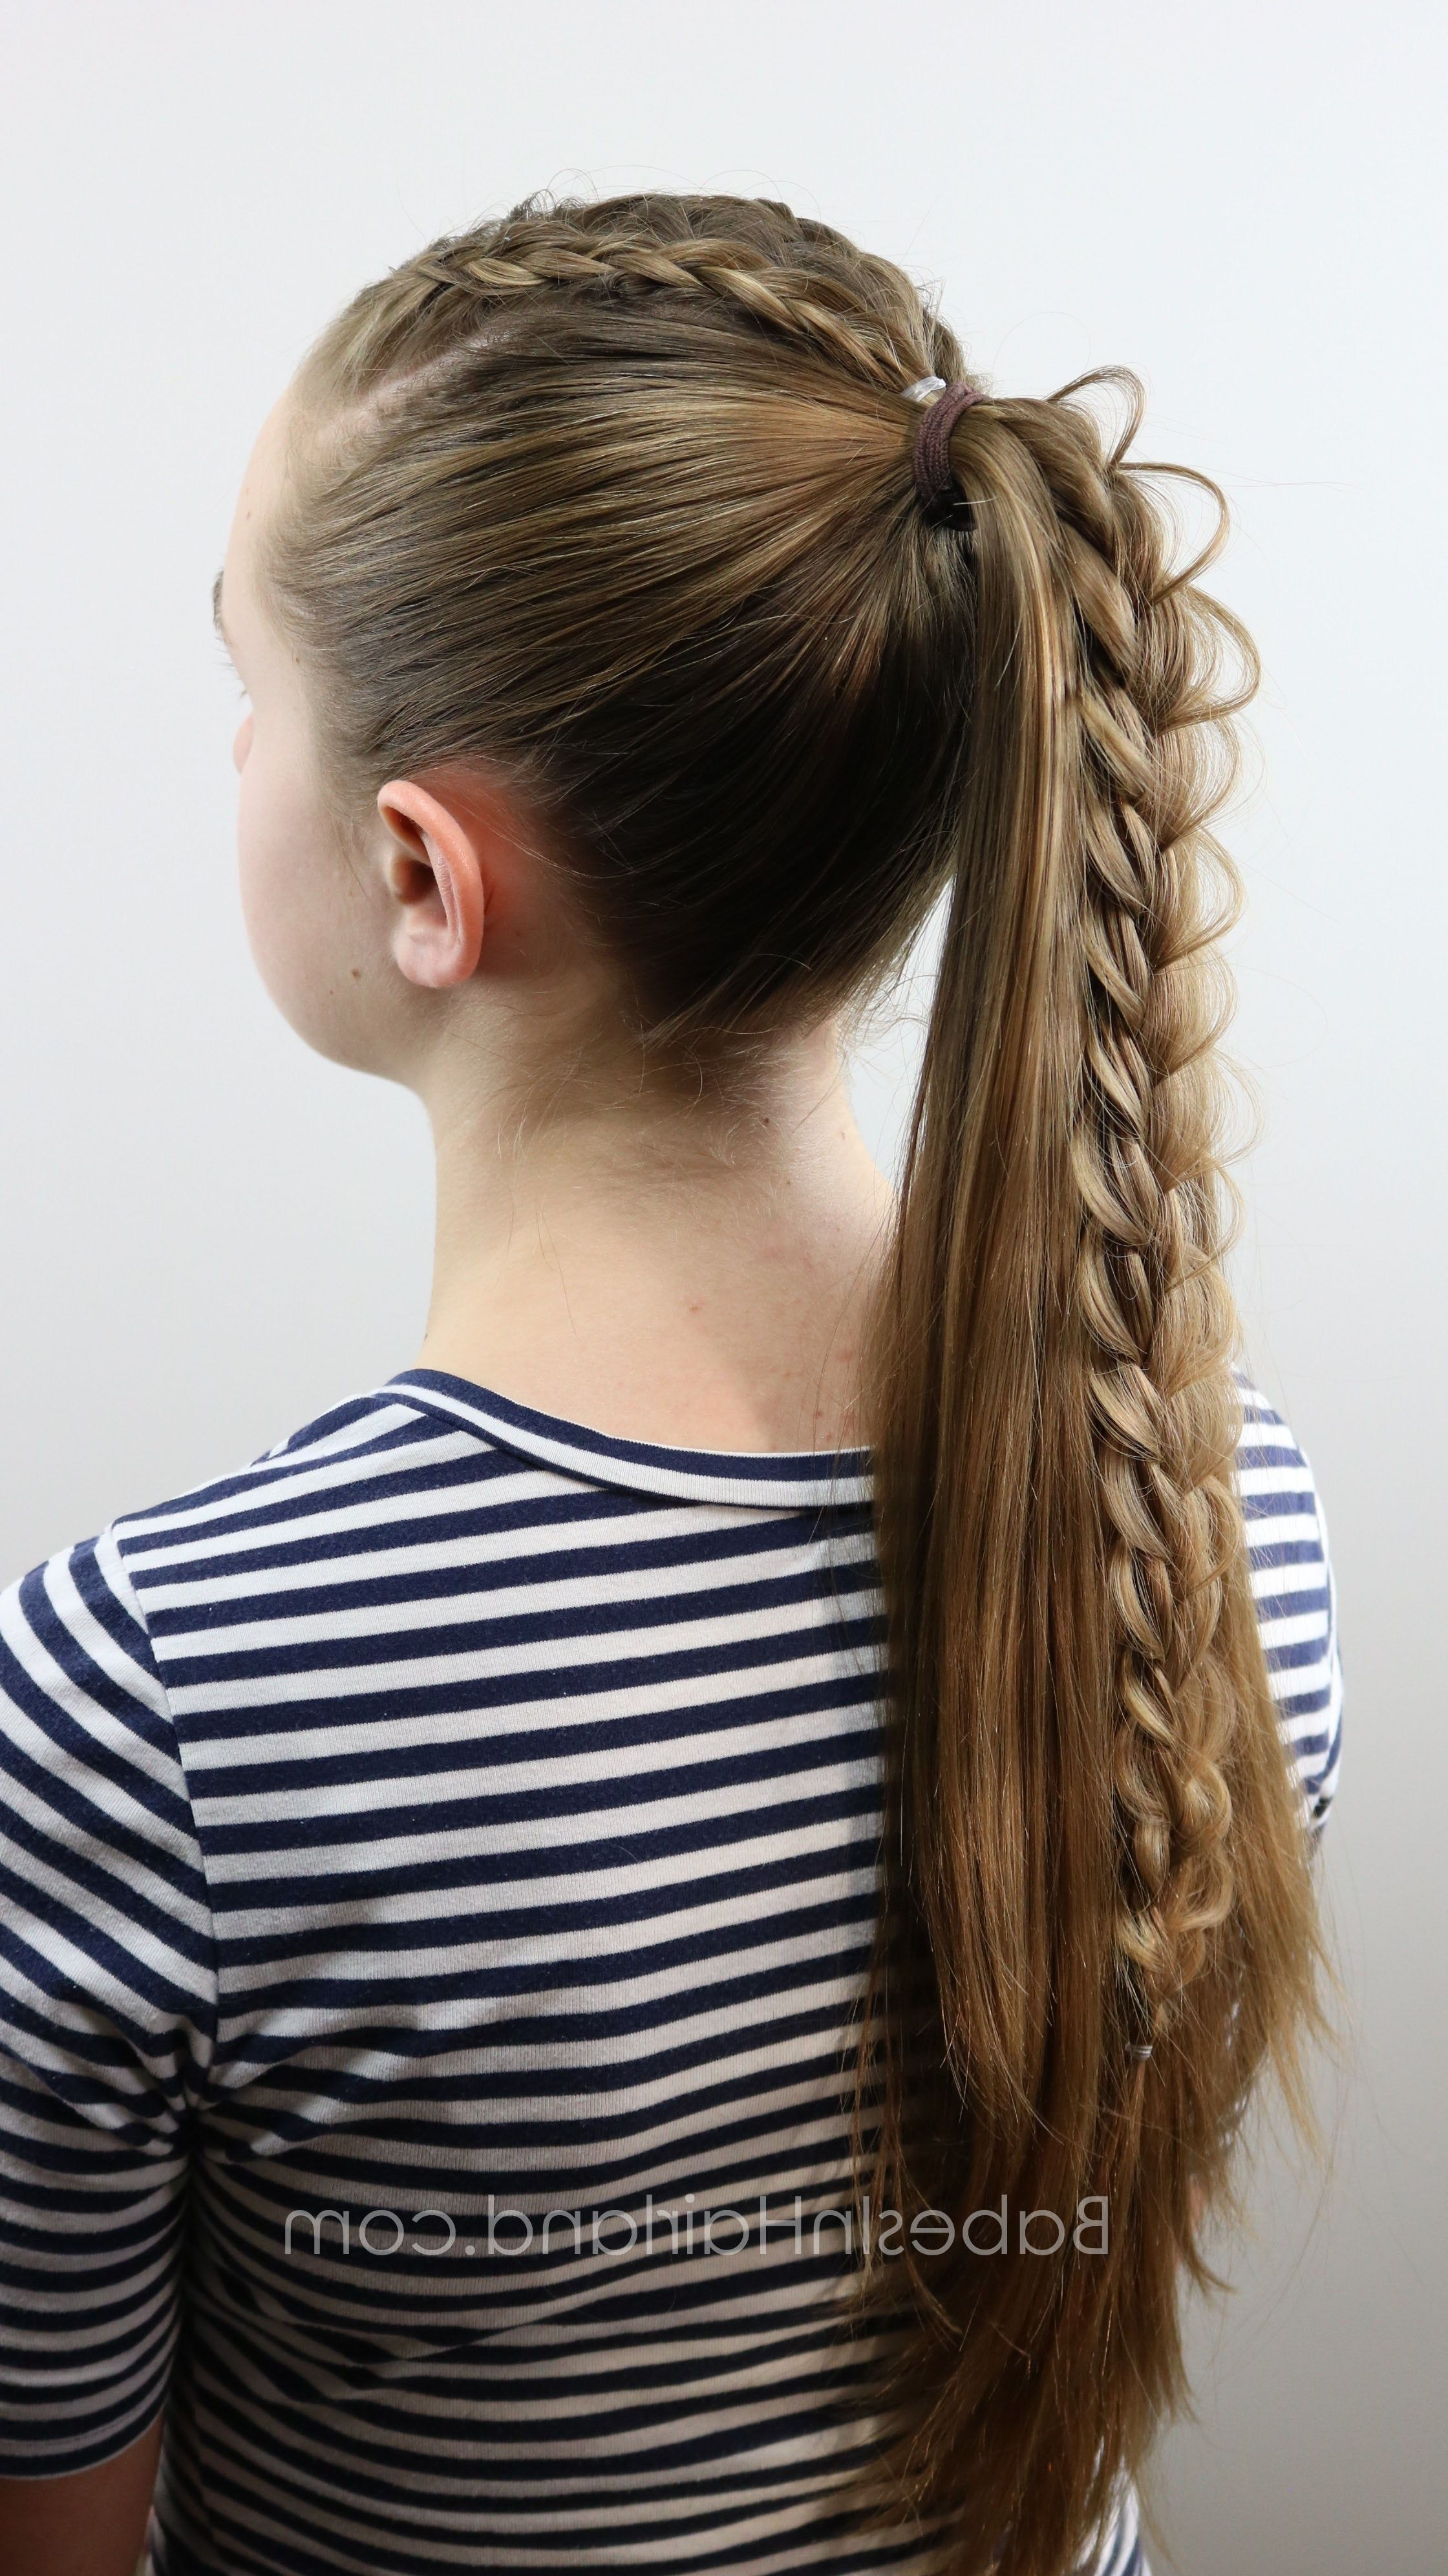 Most Recent Intricate And Adorable French Braid Ponytail Hairstyles Inside 2 Dutch Braids 5 Different Hairstyles (View 3 of 20)